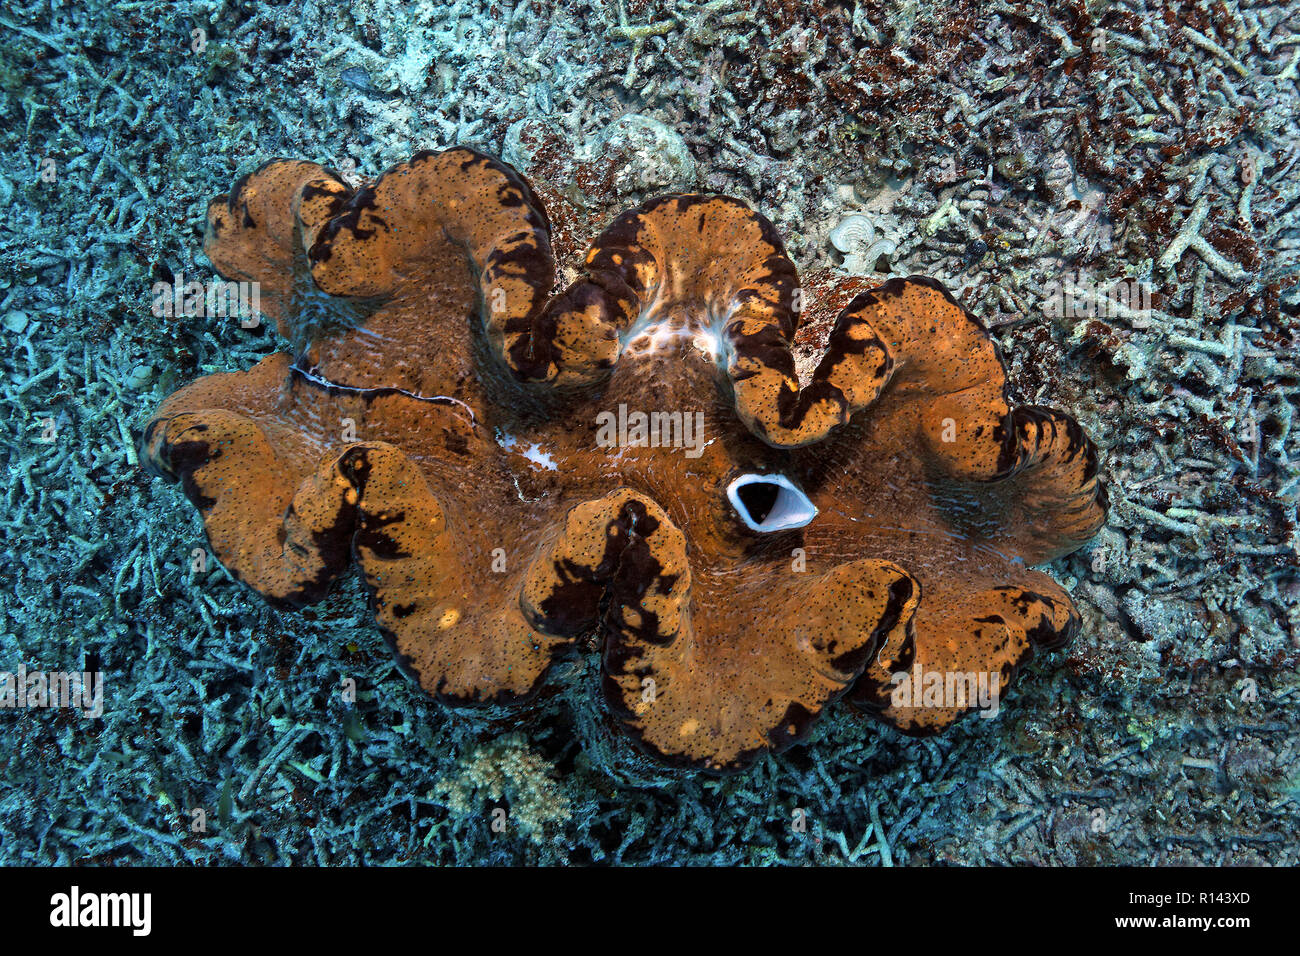 True giant clam (Tridacna gigas) surrounded of broken corals, Palau, Micronesia - Stock Image